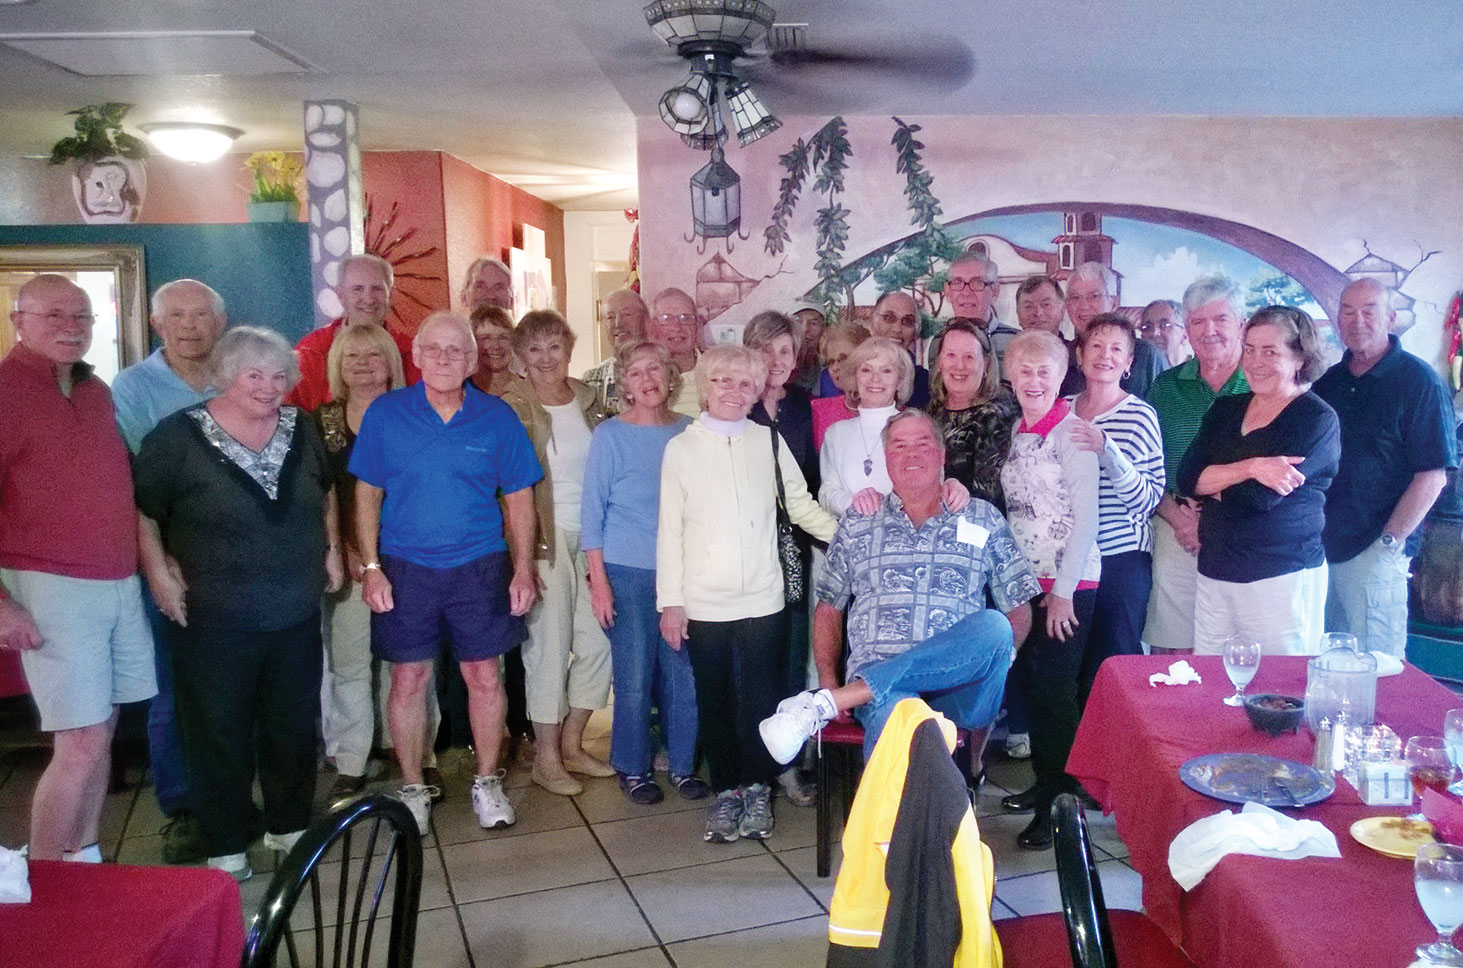 The group enjoyed a great dinner after a hard day's ride.